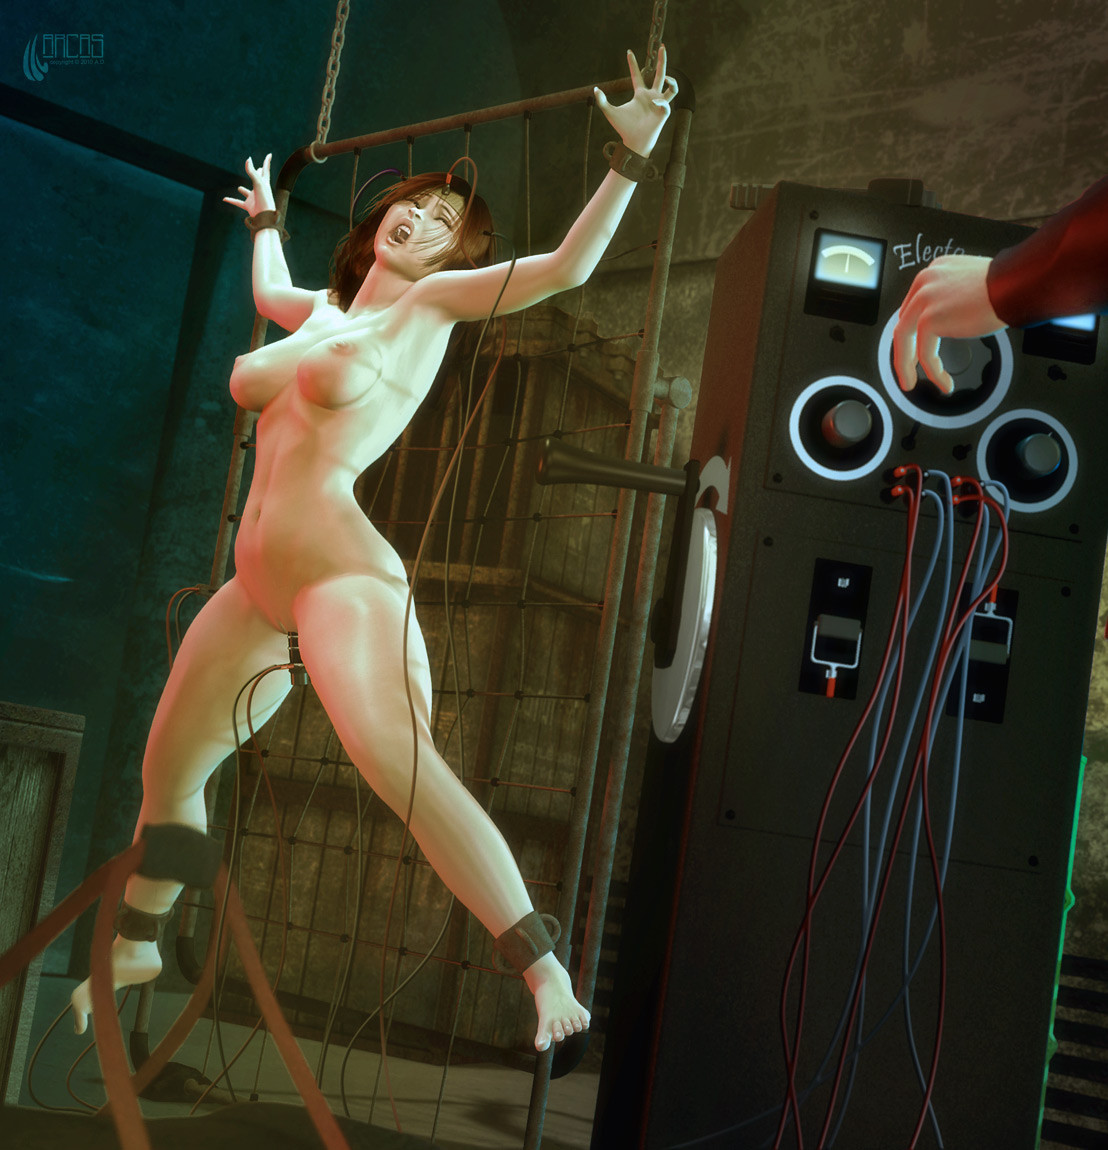 electro torture drawings Bdsm